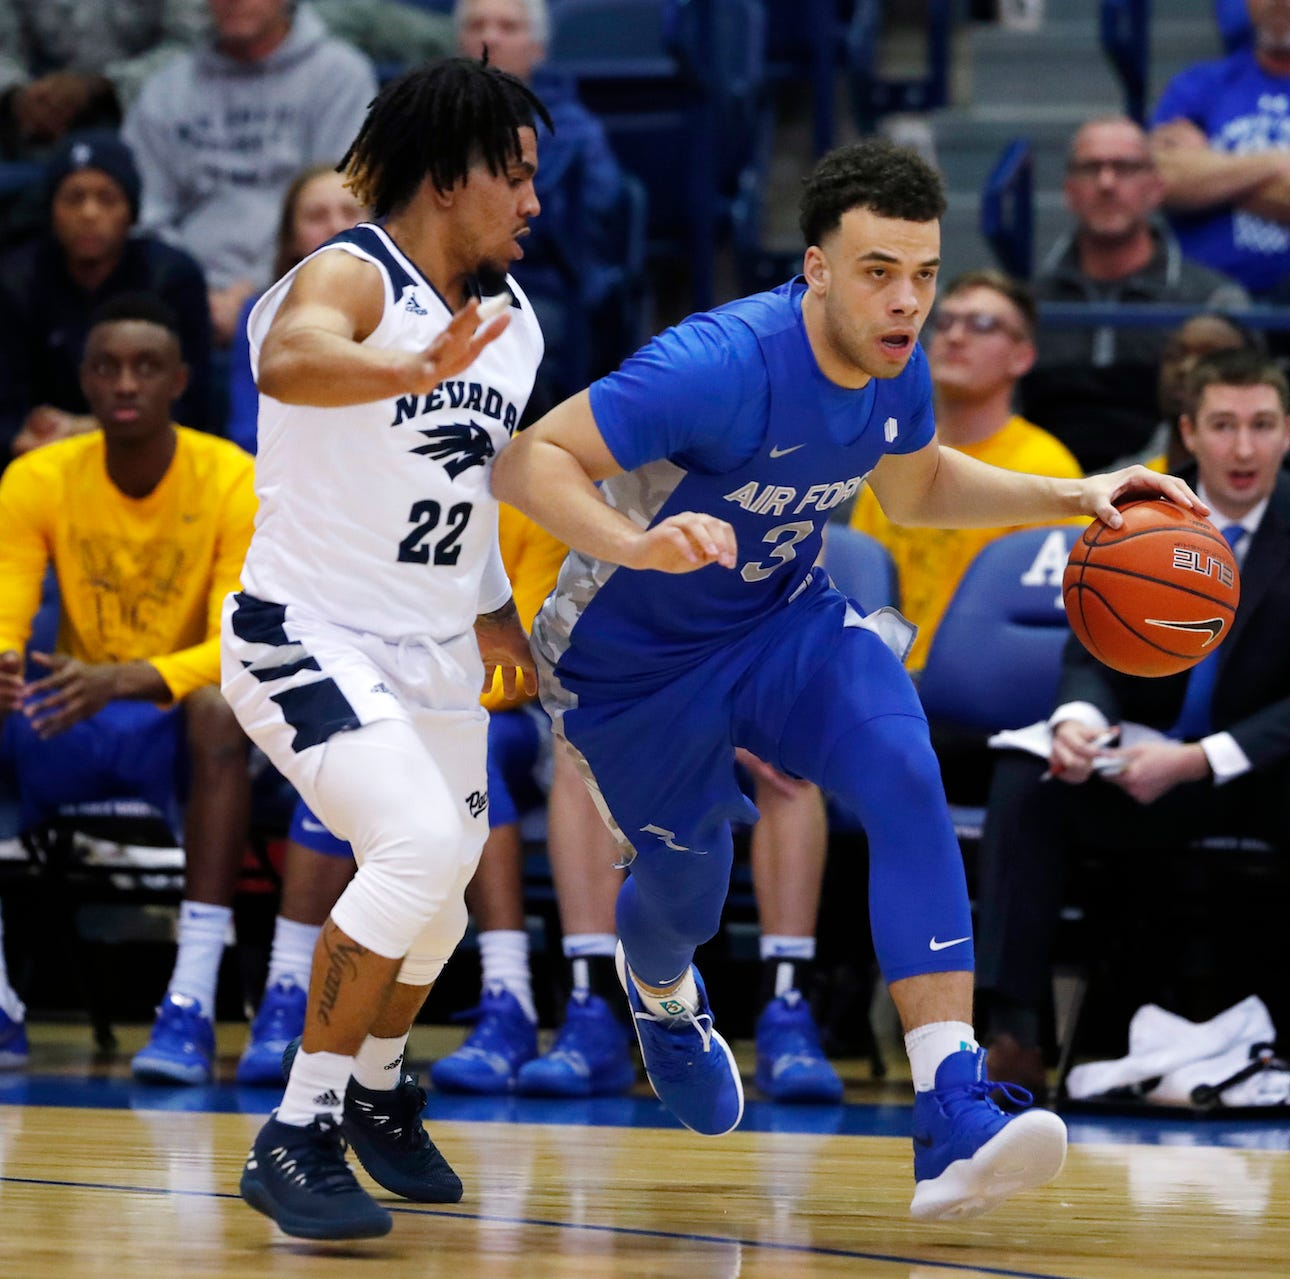 Nevada 90, Air Force 79: Pack too much for Air Force, and all that Jazz